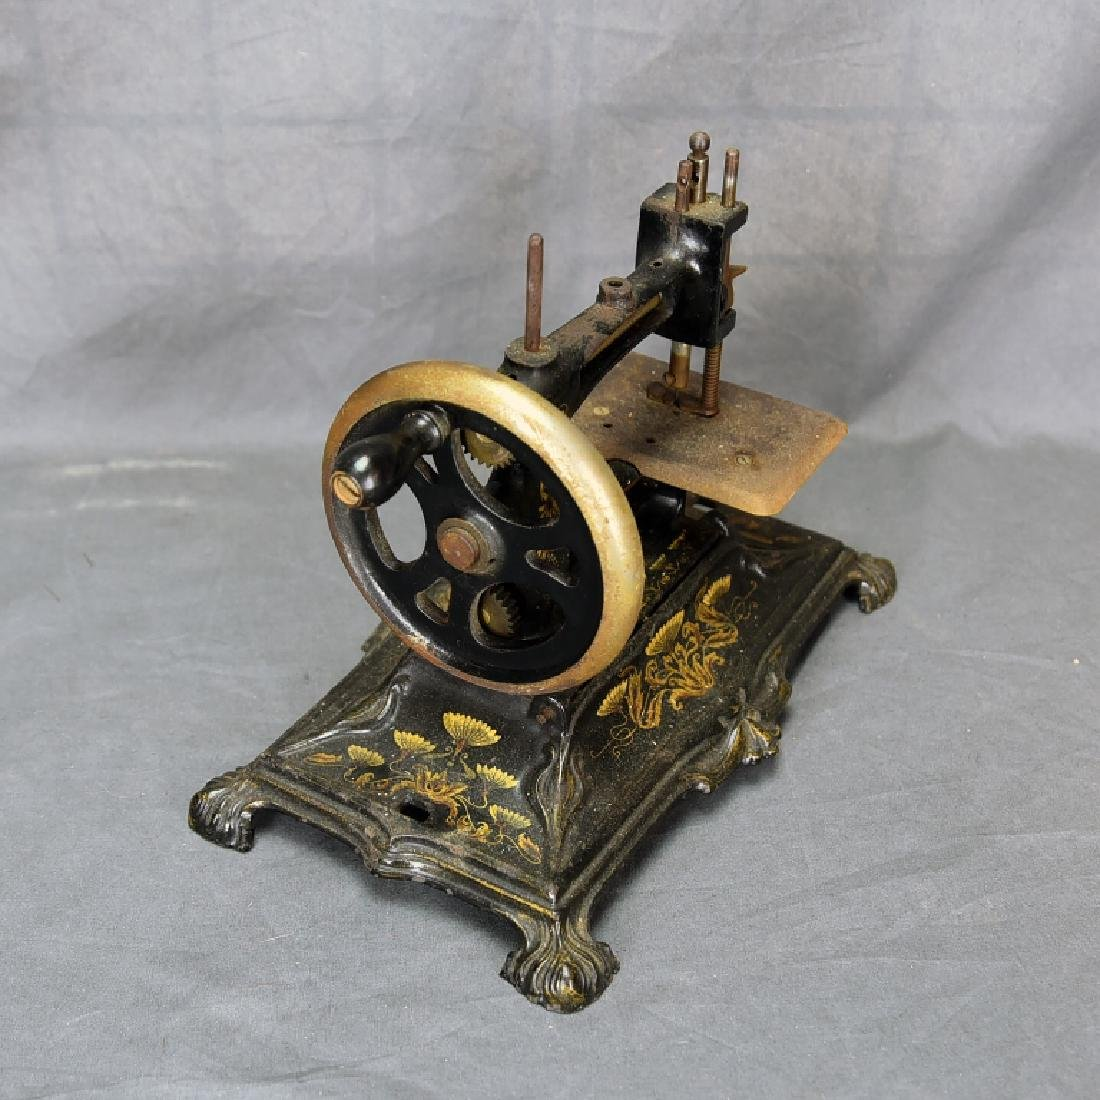 Hand Crank Cast Iron Sewing Machine by Muller - 7